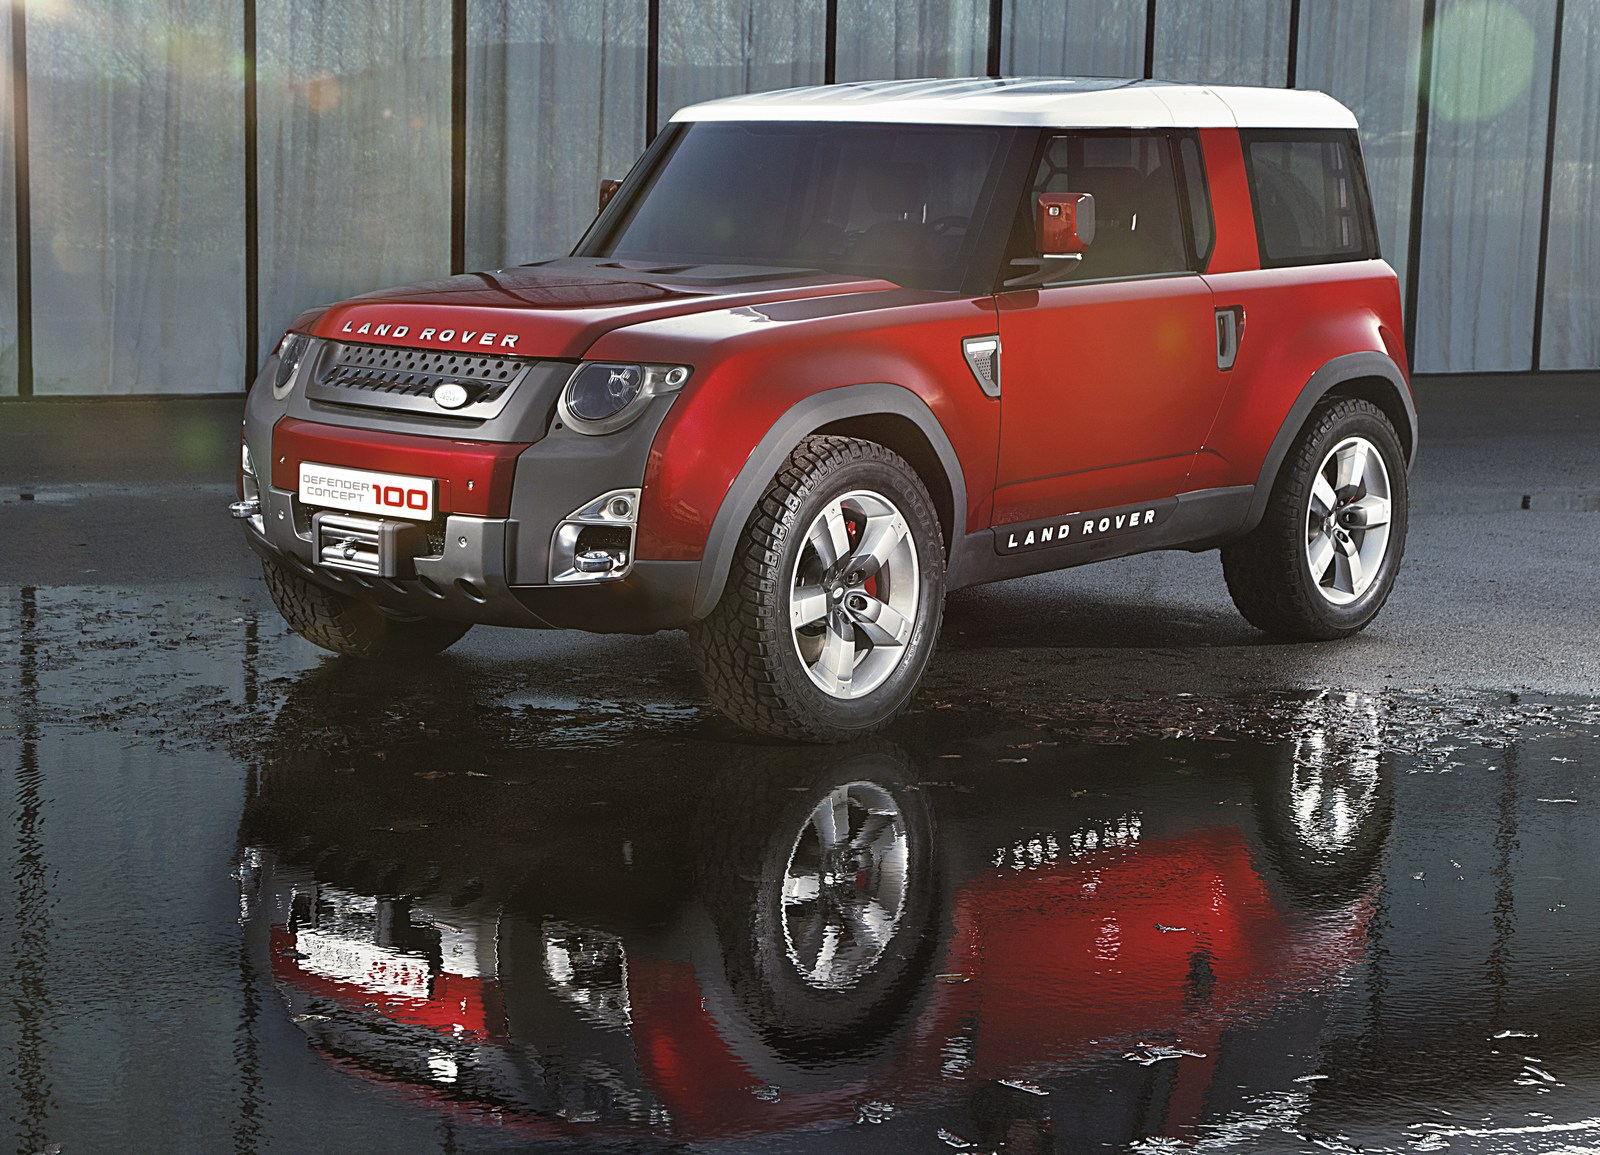 New Land Rover Defender Concept Could Be Introduced Next